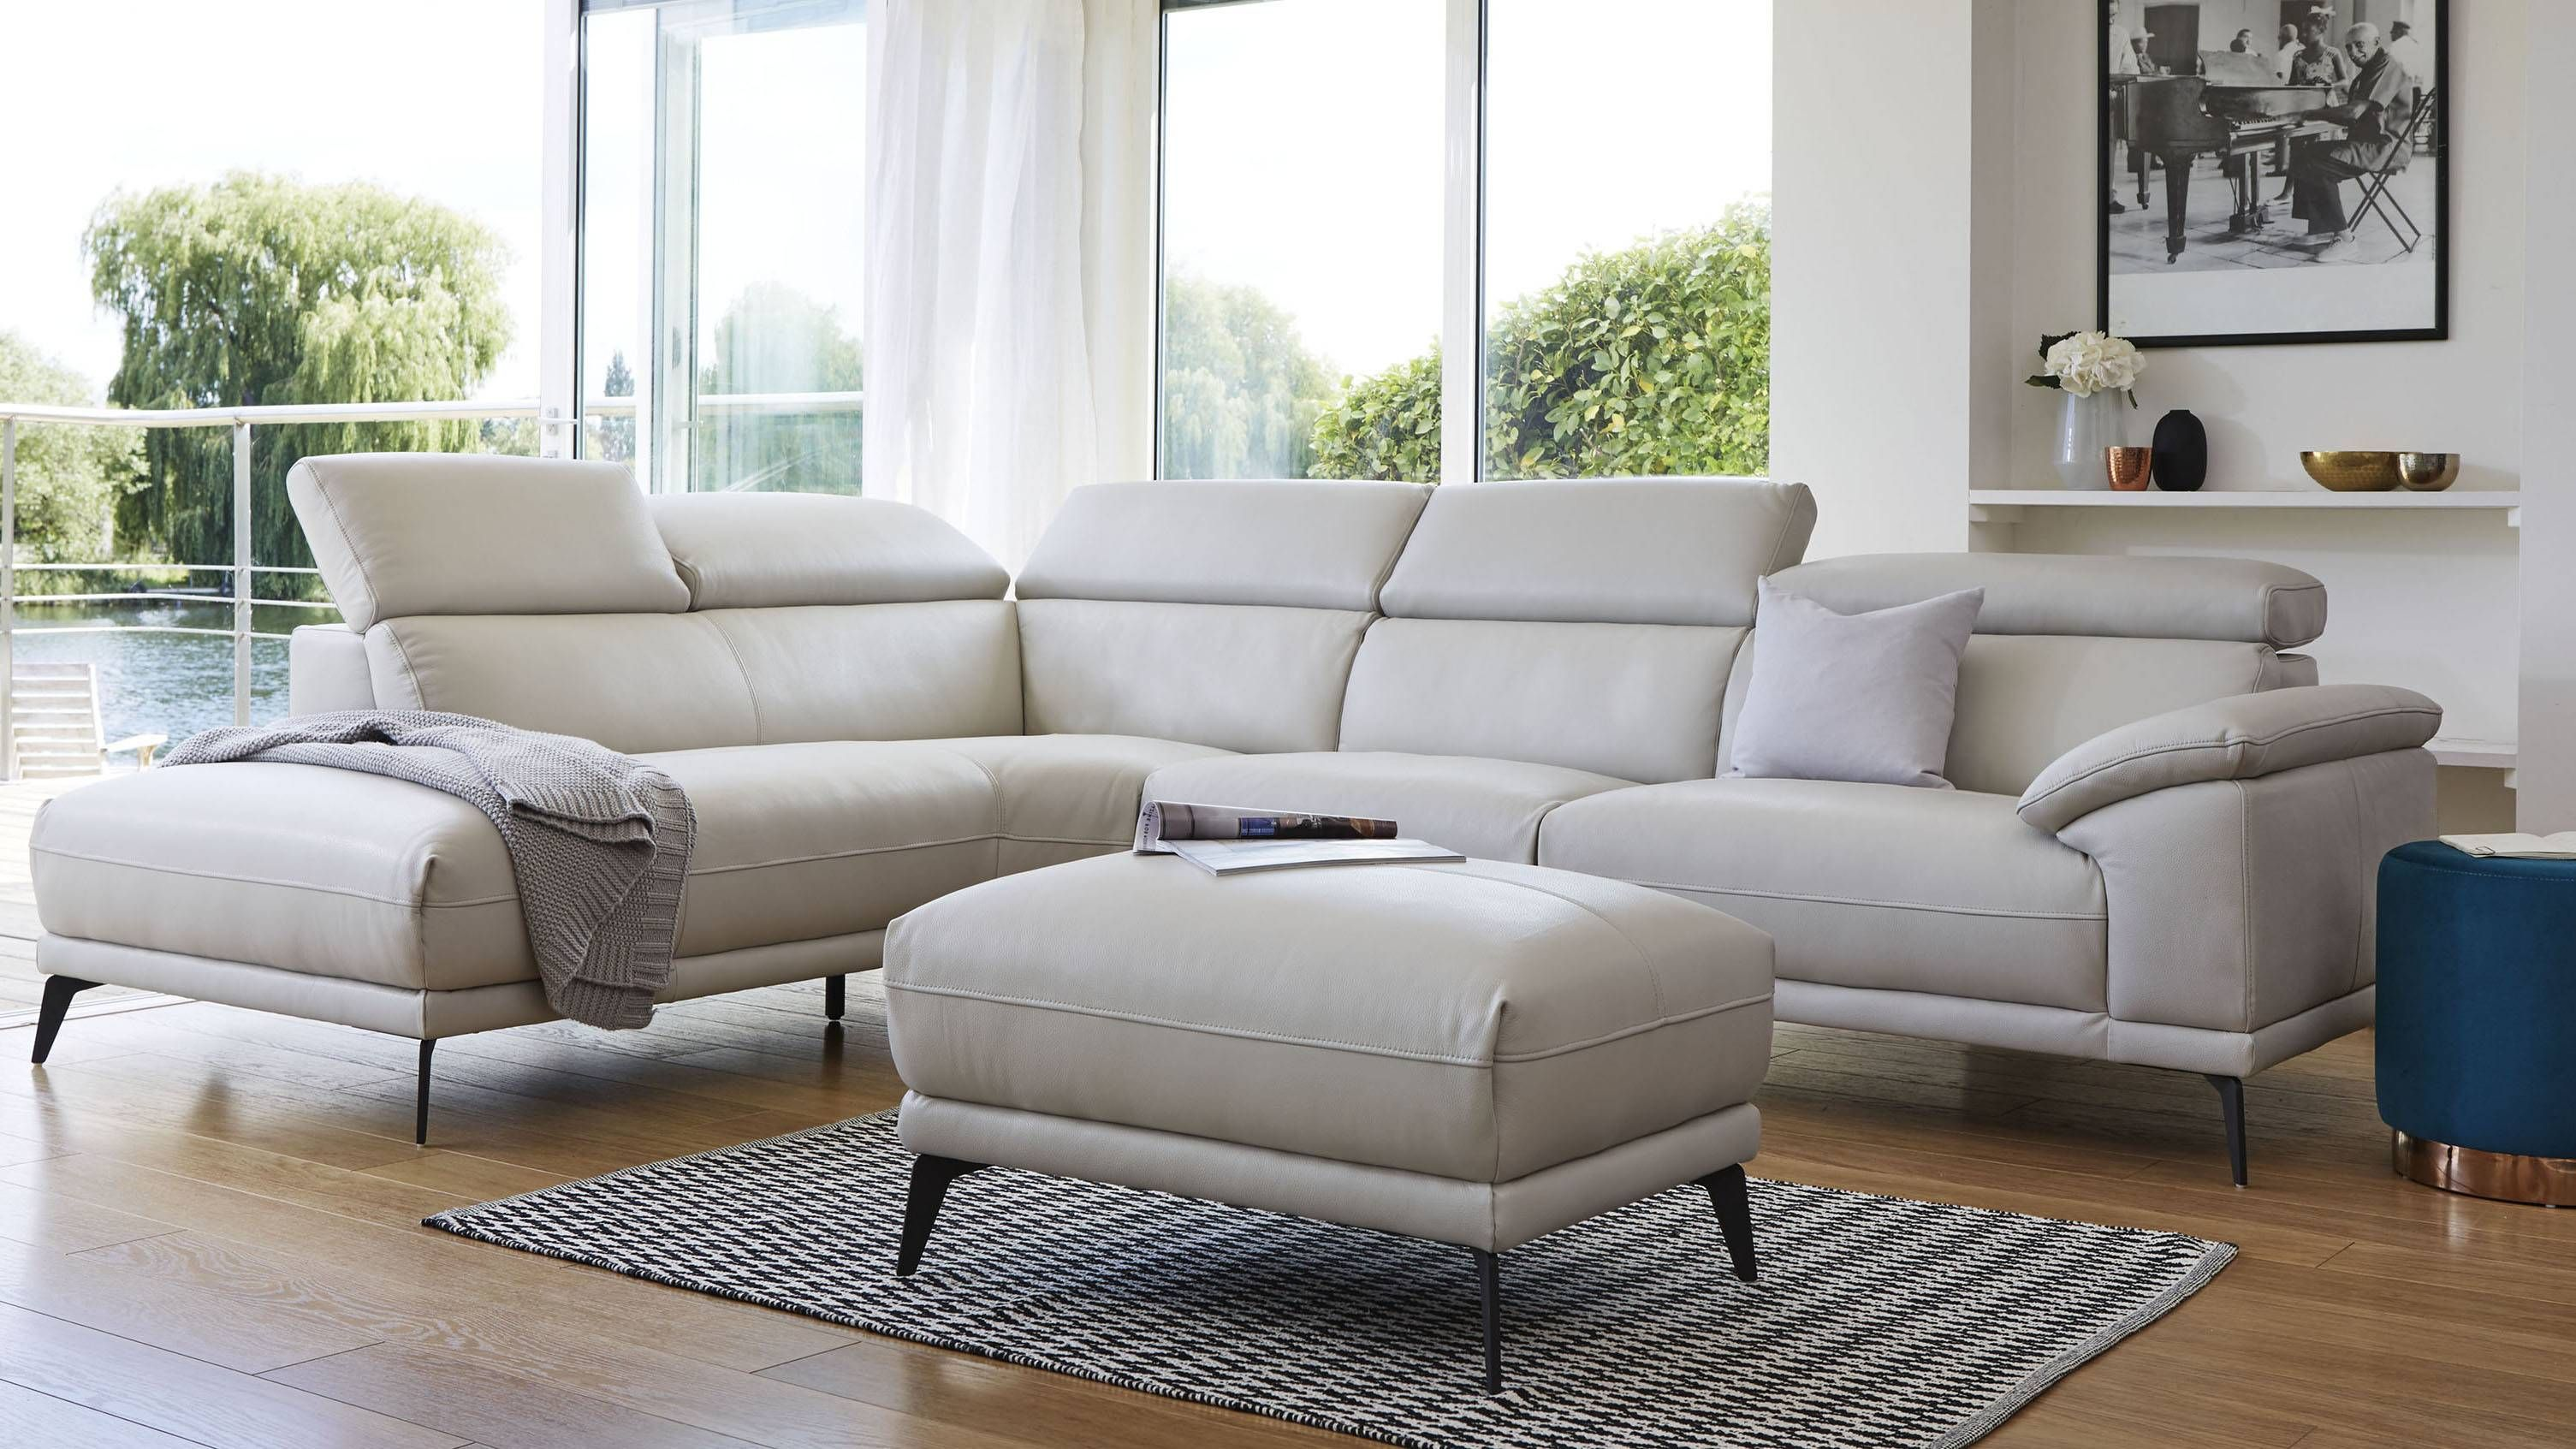 Pleasant Siena Left Hand Modern Leather Corner Sofa Lounge Ideas Home Interior And Landscaping Spoatsignezvosmurscom